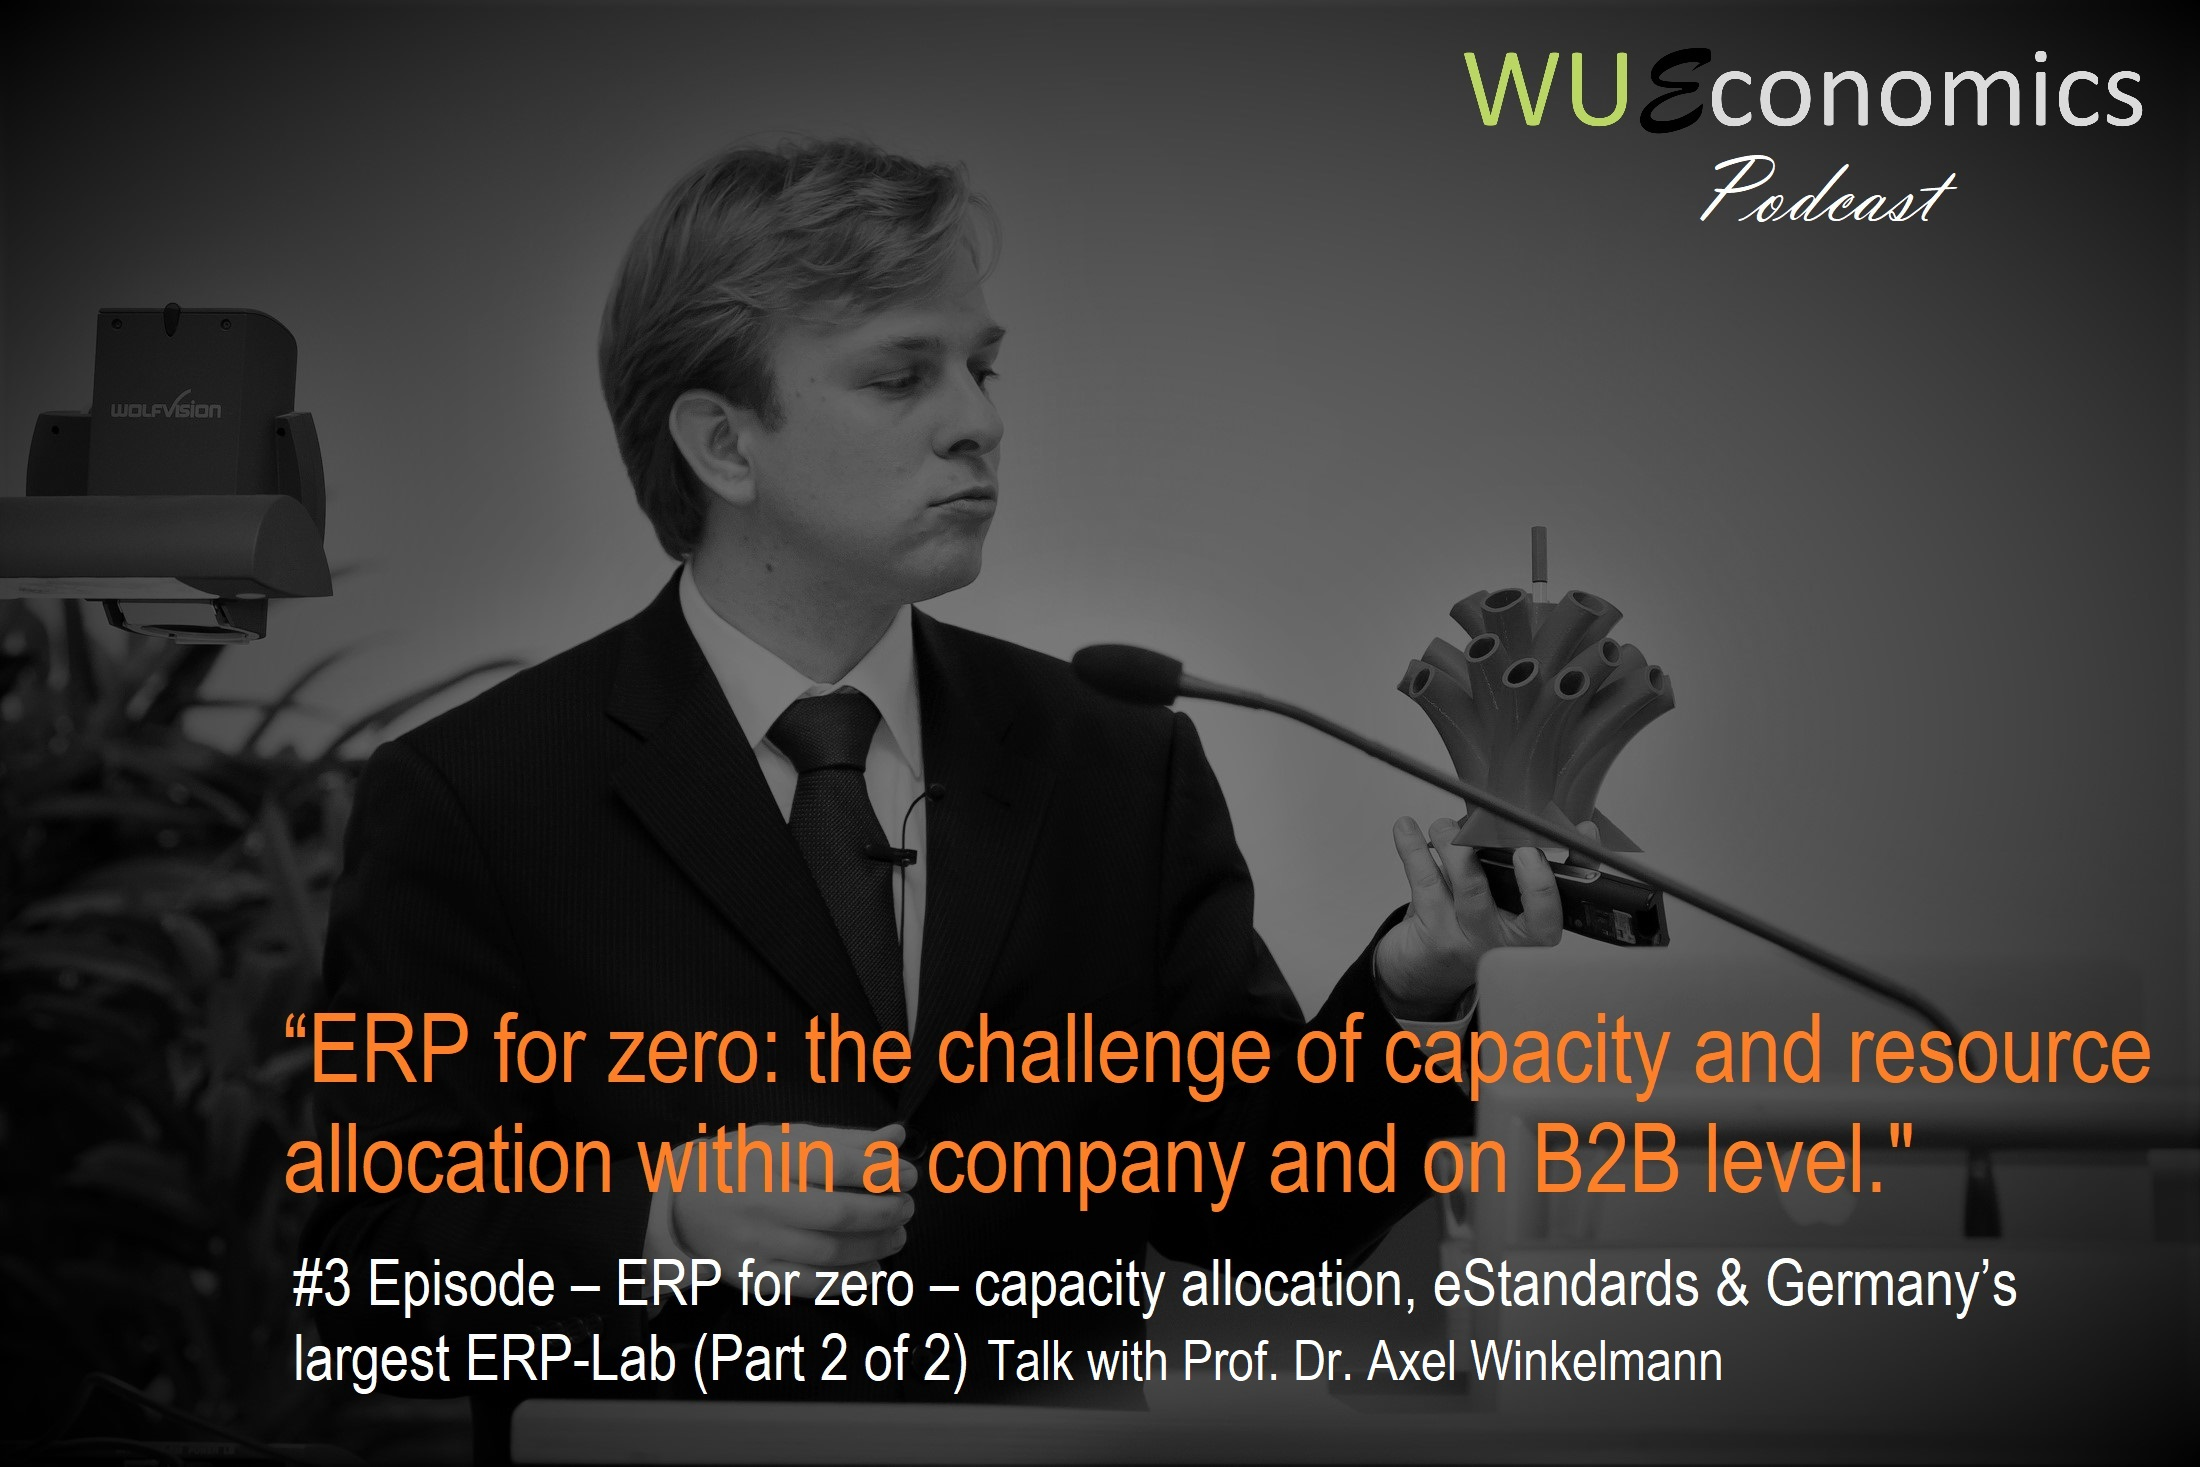 #3 Episode – ERP for zero  (2/2)